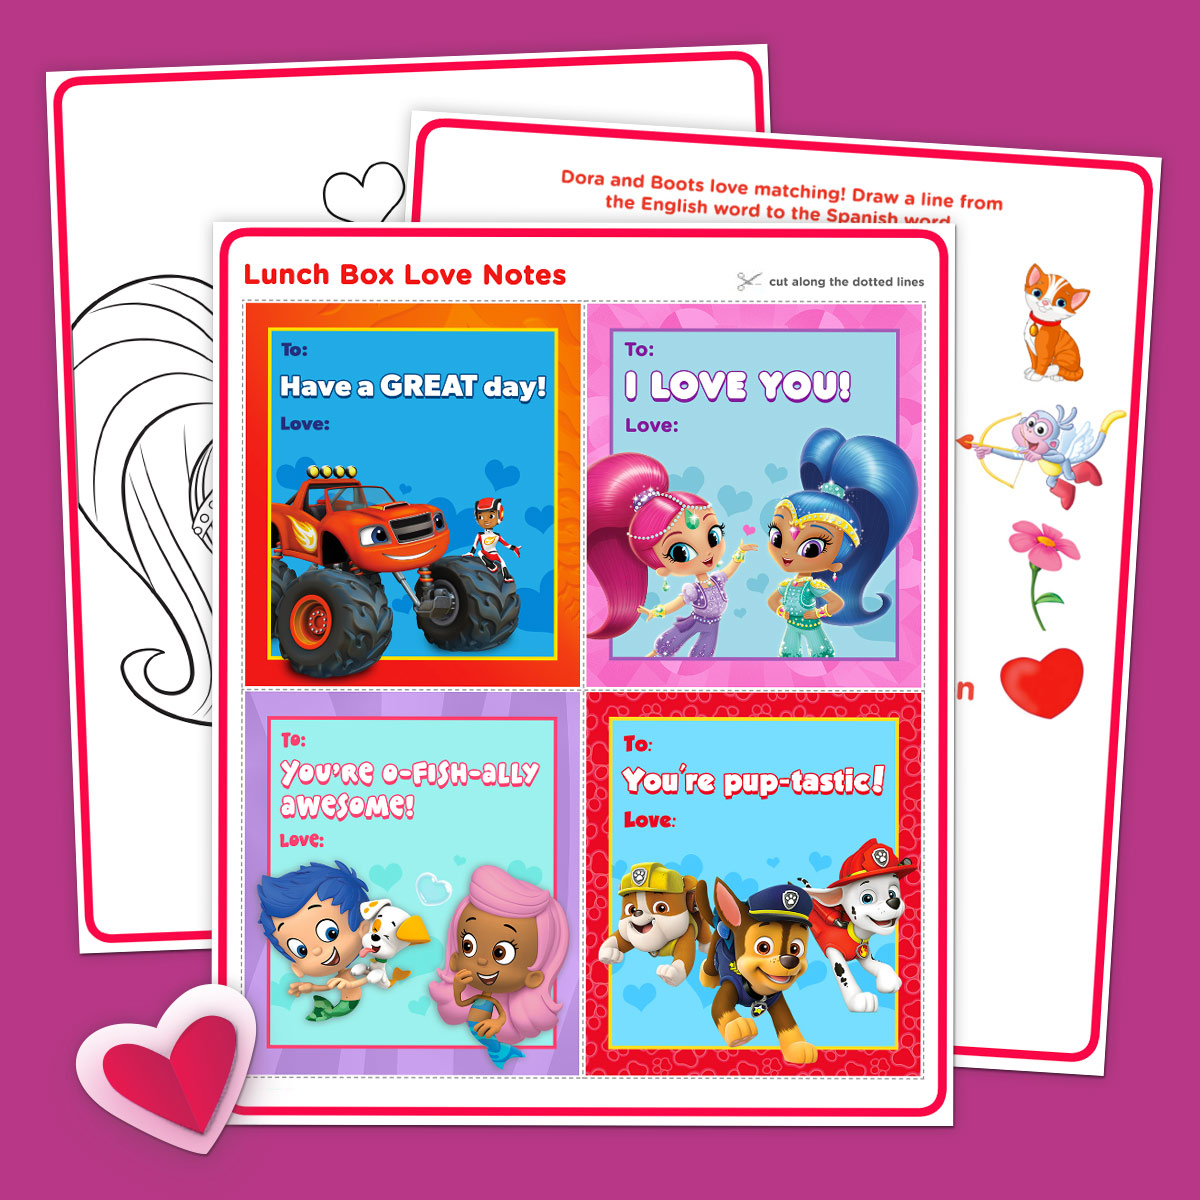 Exclusive Nick Jr. Fan Club Valentine's Day Activity Pack